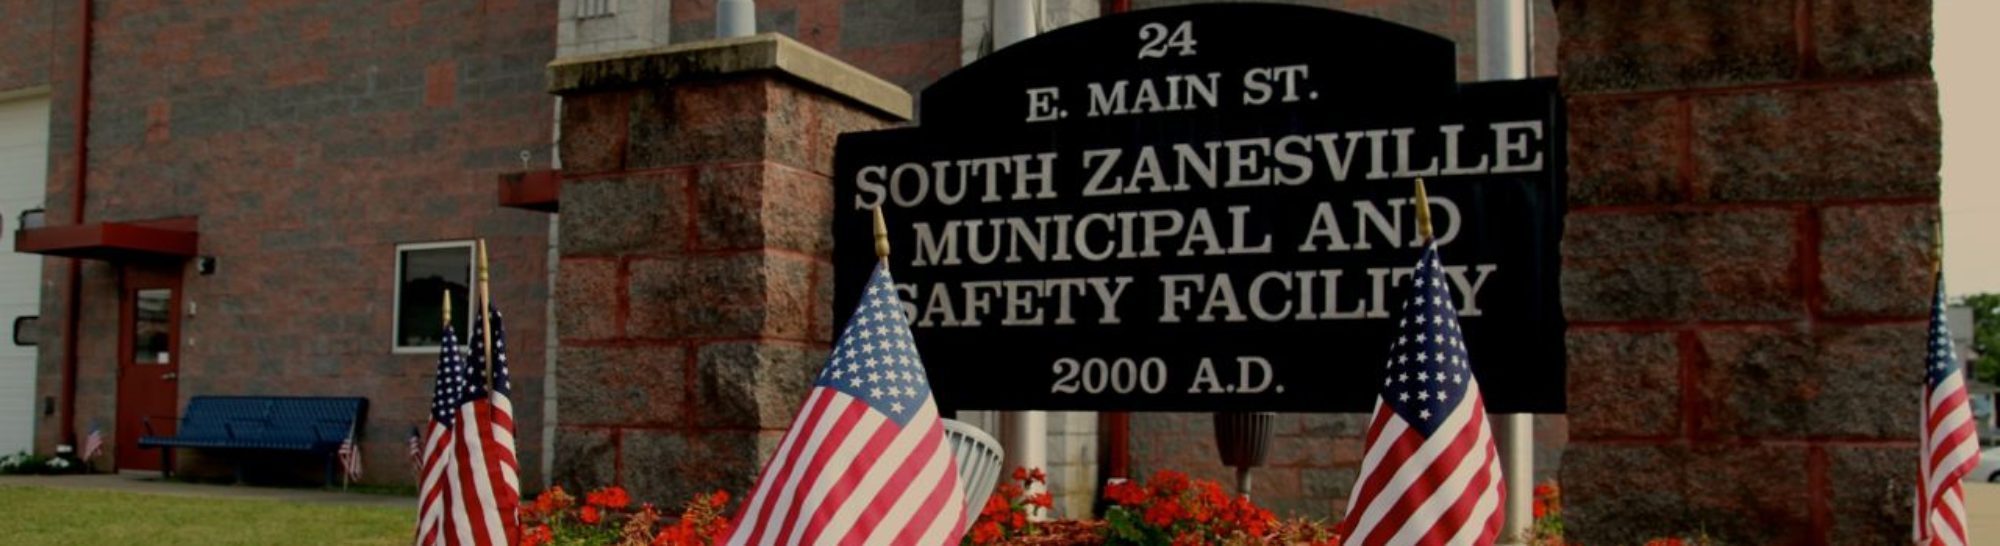 Village of South Zanesville